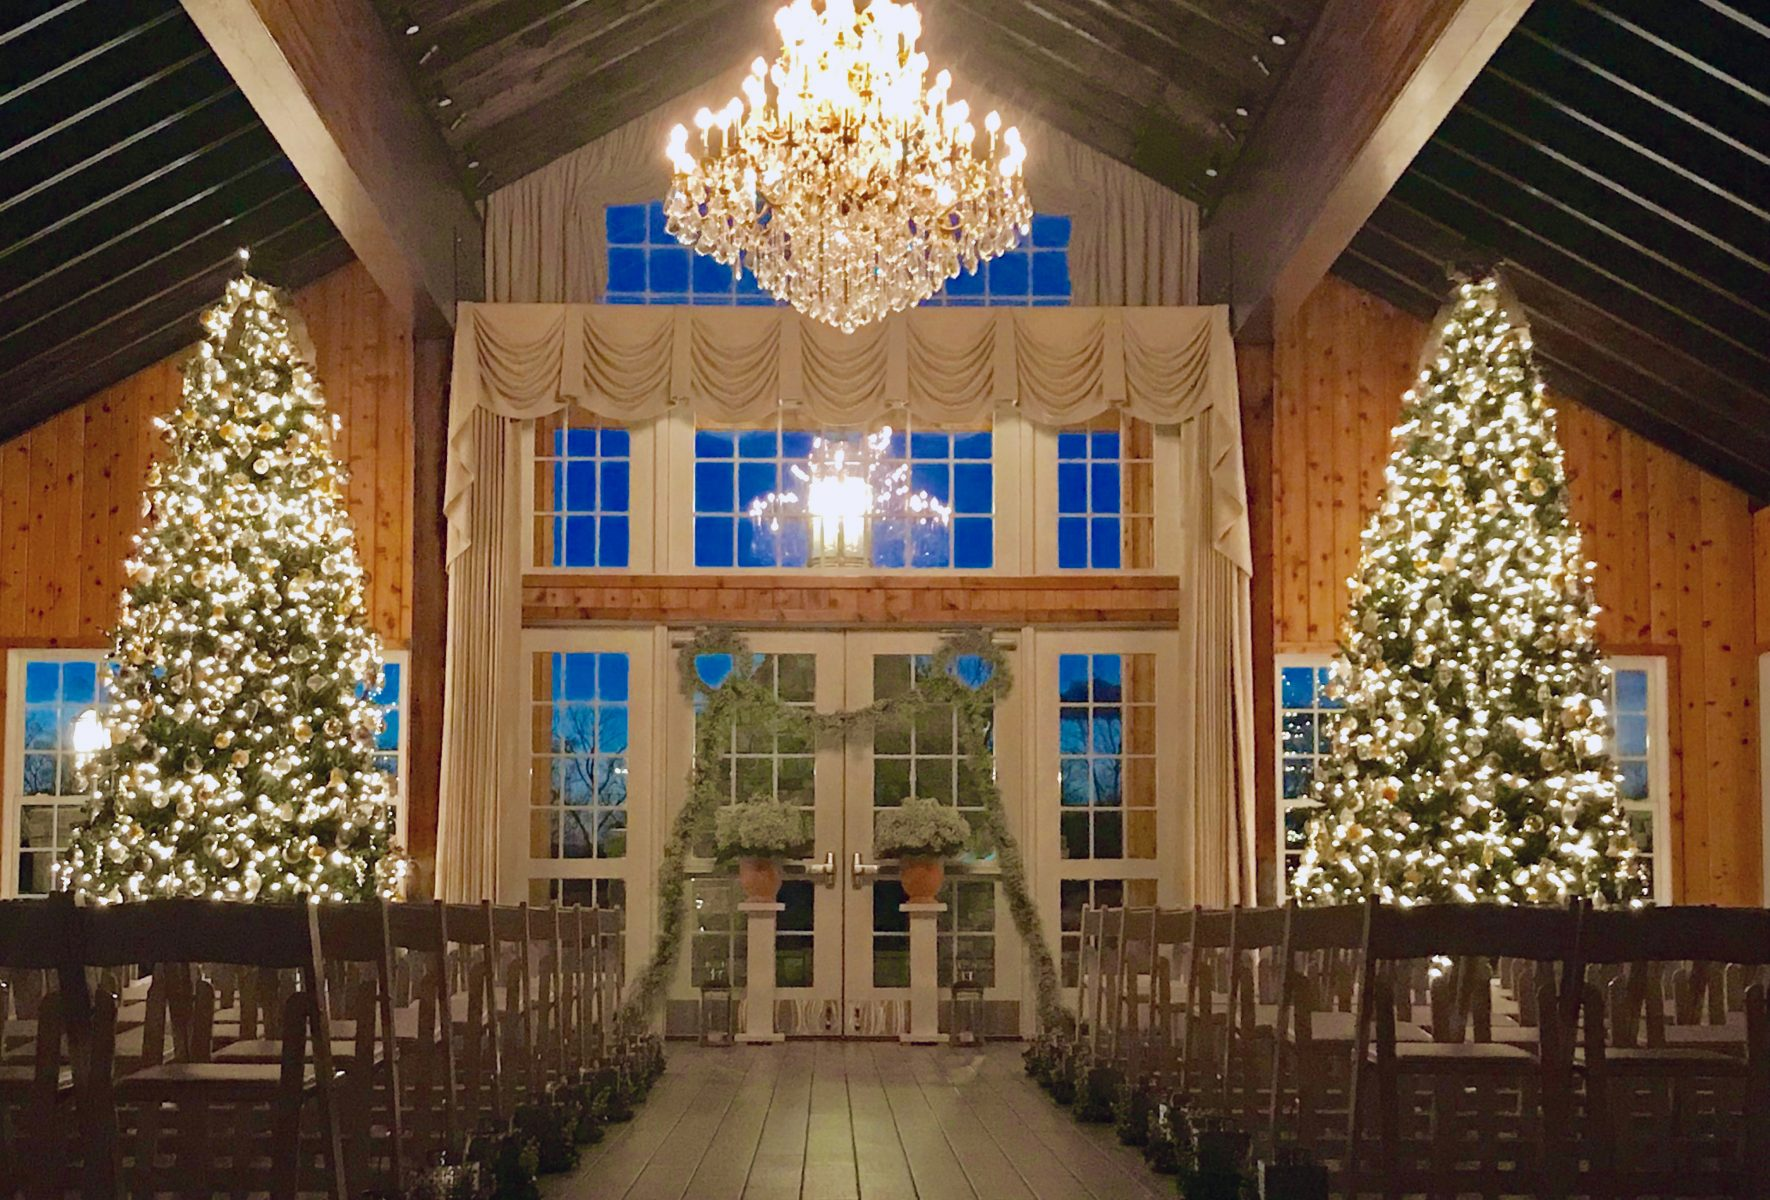 Wedding Venue with Christmas Trees- Christmas Wedding in Wedding Barn Venue Lodge at Mount Ida Farm